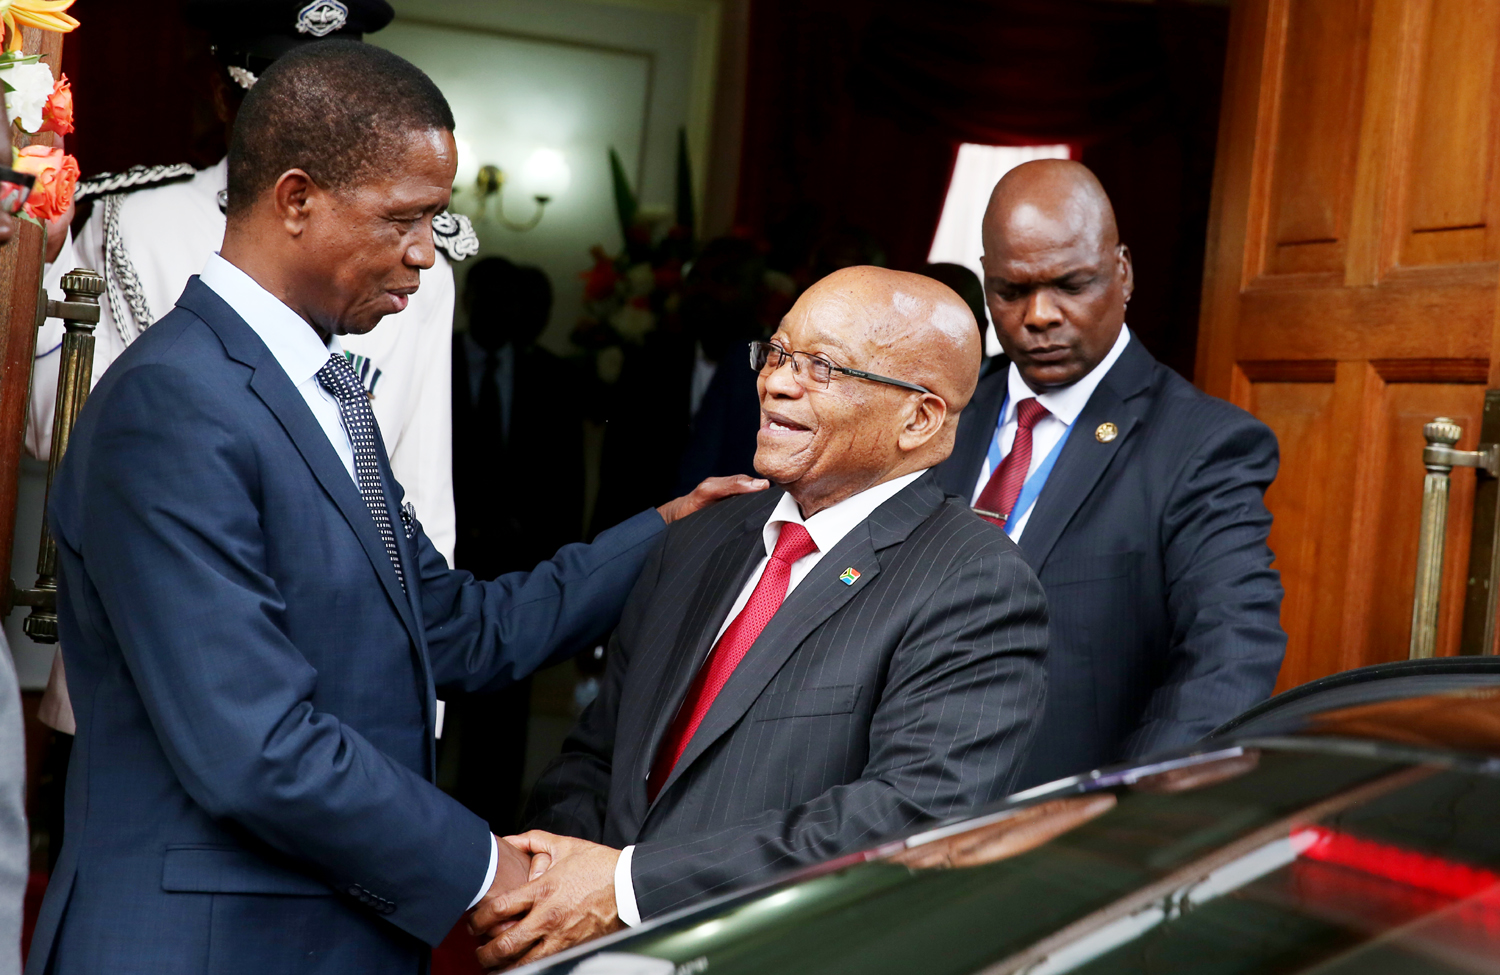 PRESIDENT JACOB ZUMA ARRIVES IN ZAMBIA ON THURSDAY FOR A